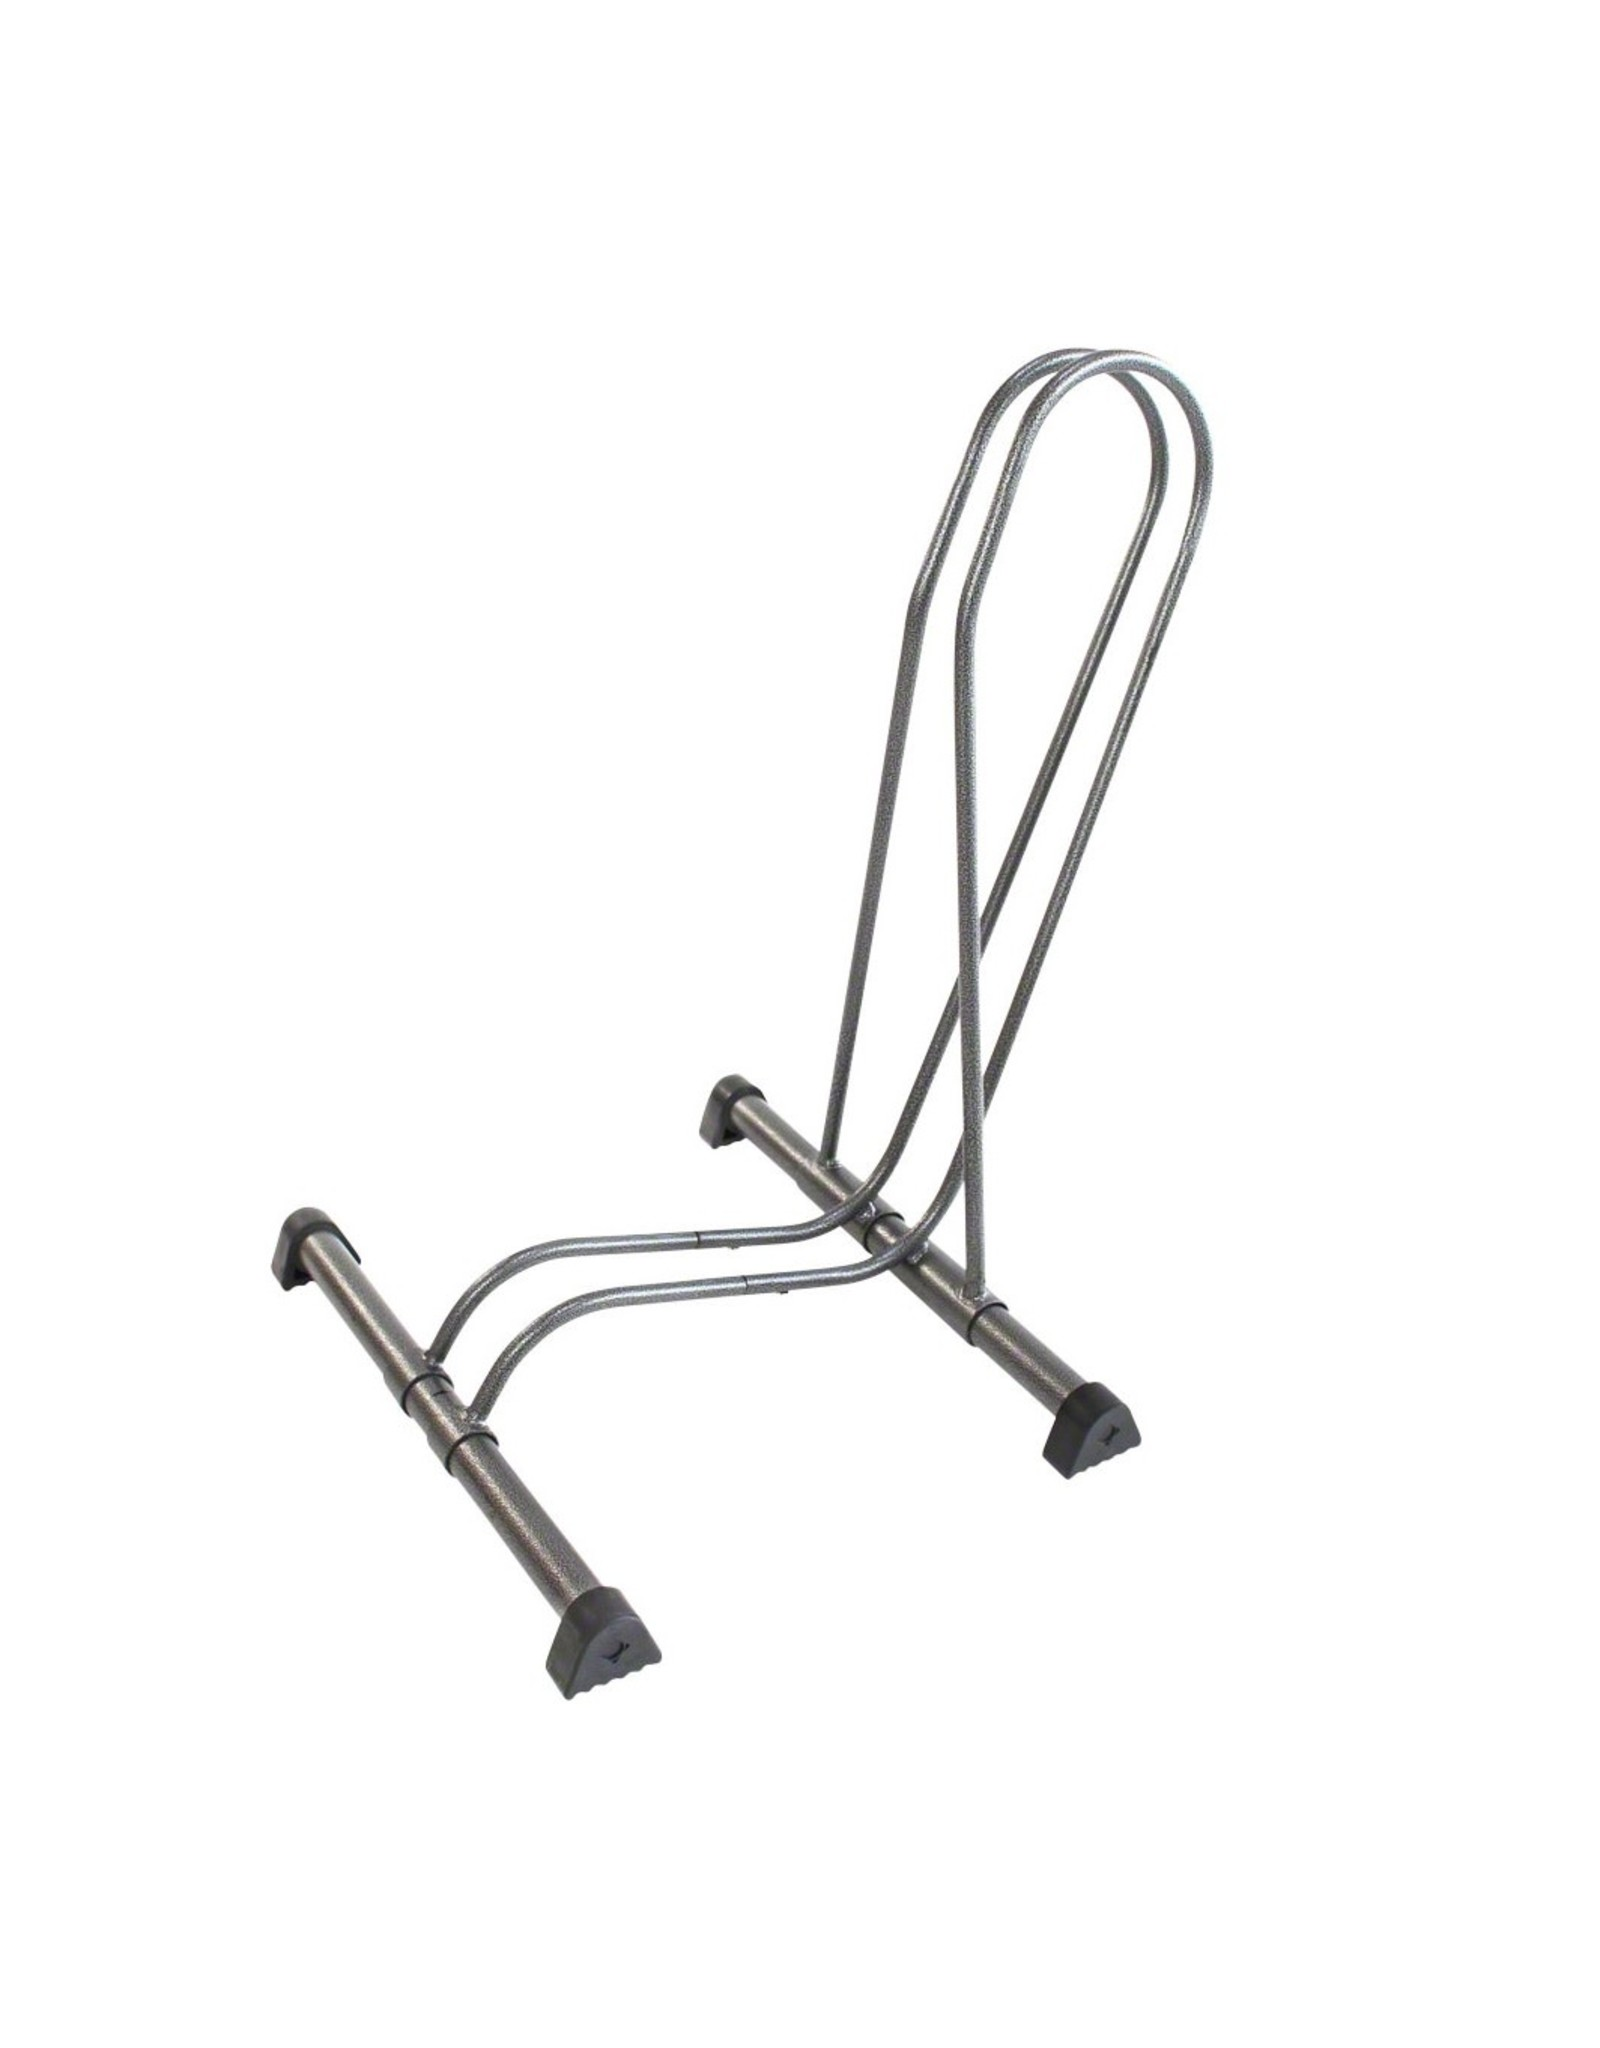 Delta Delta Shop Rack Adjustable Floor Stand